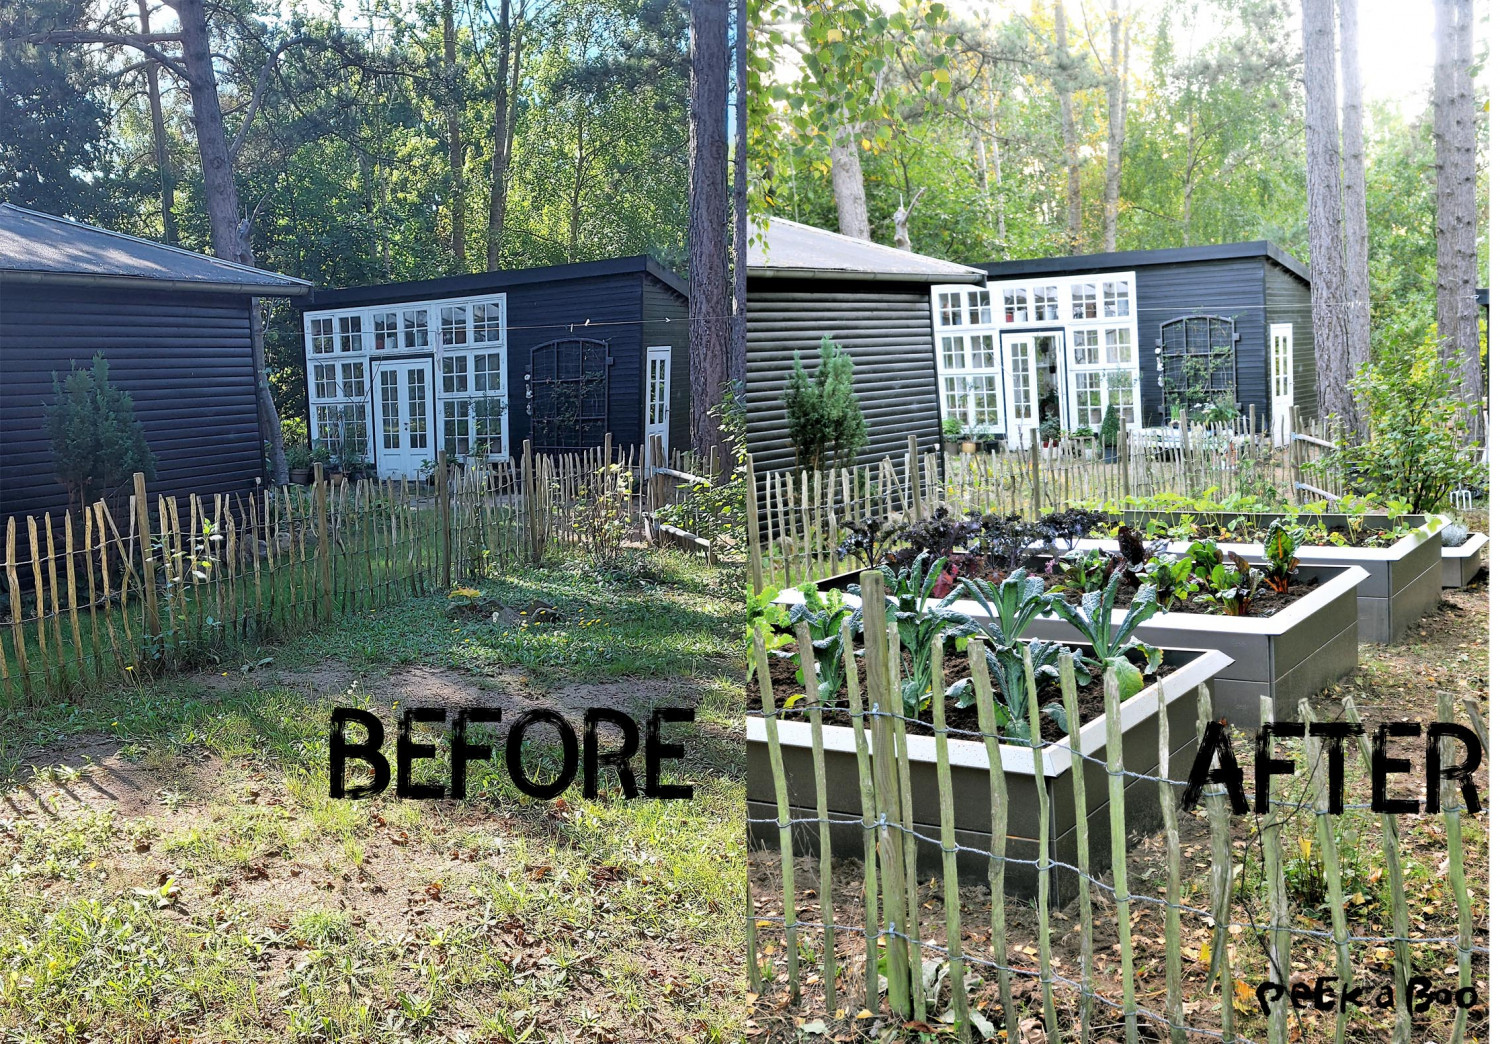 The garden before and after the transformation